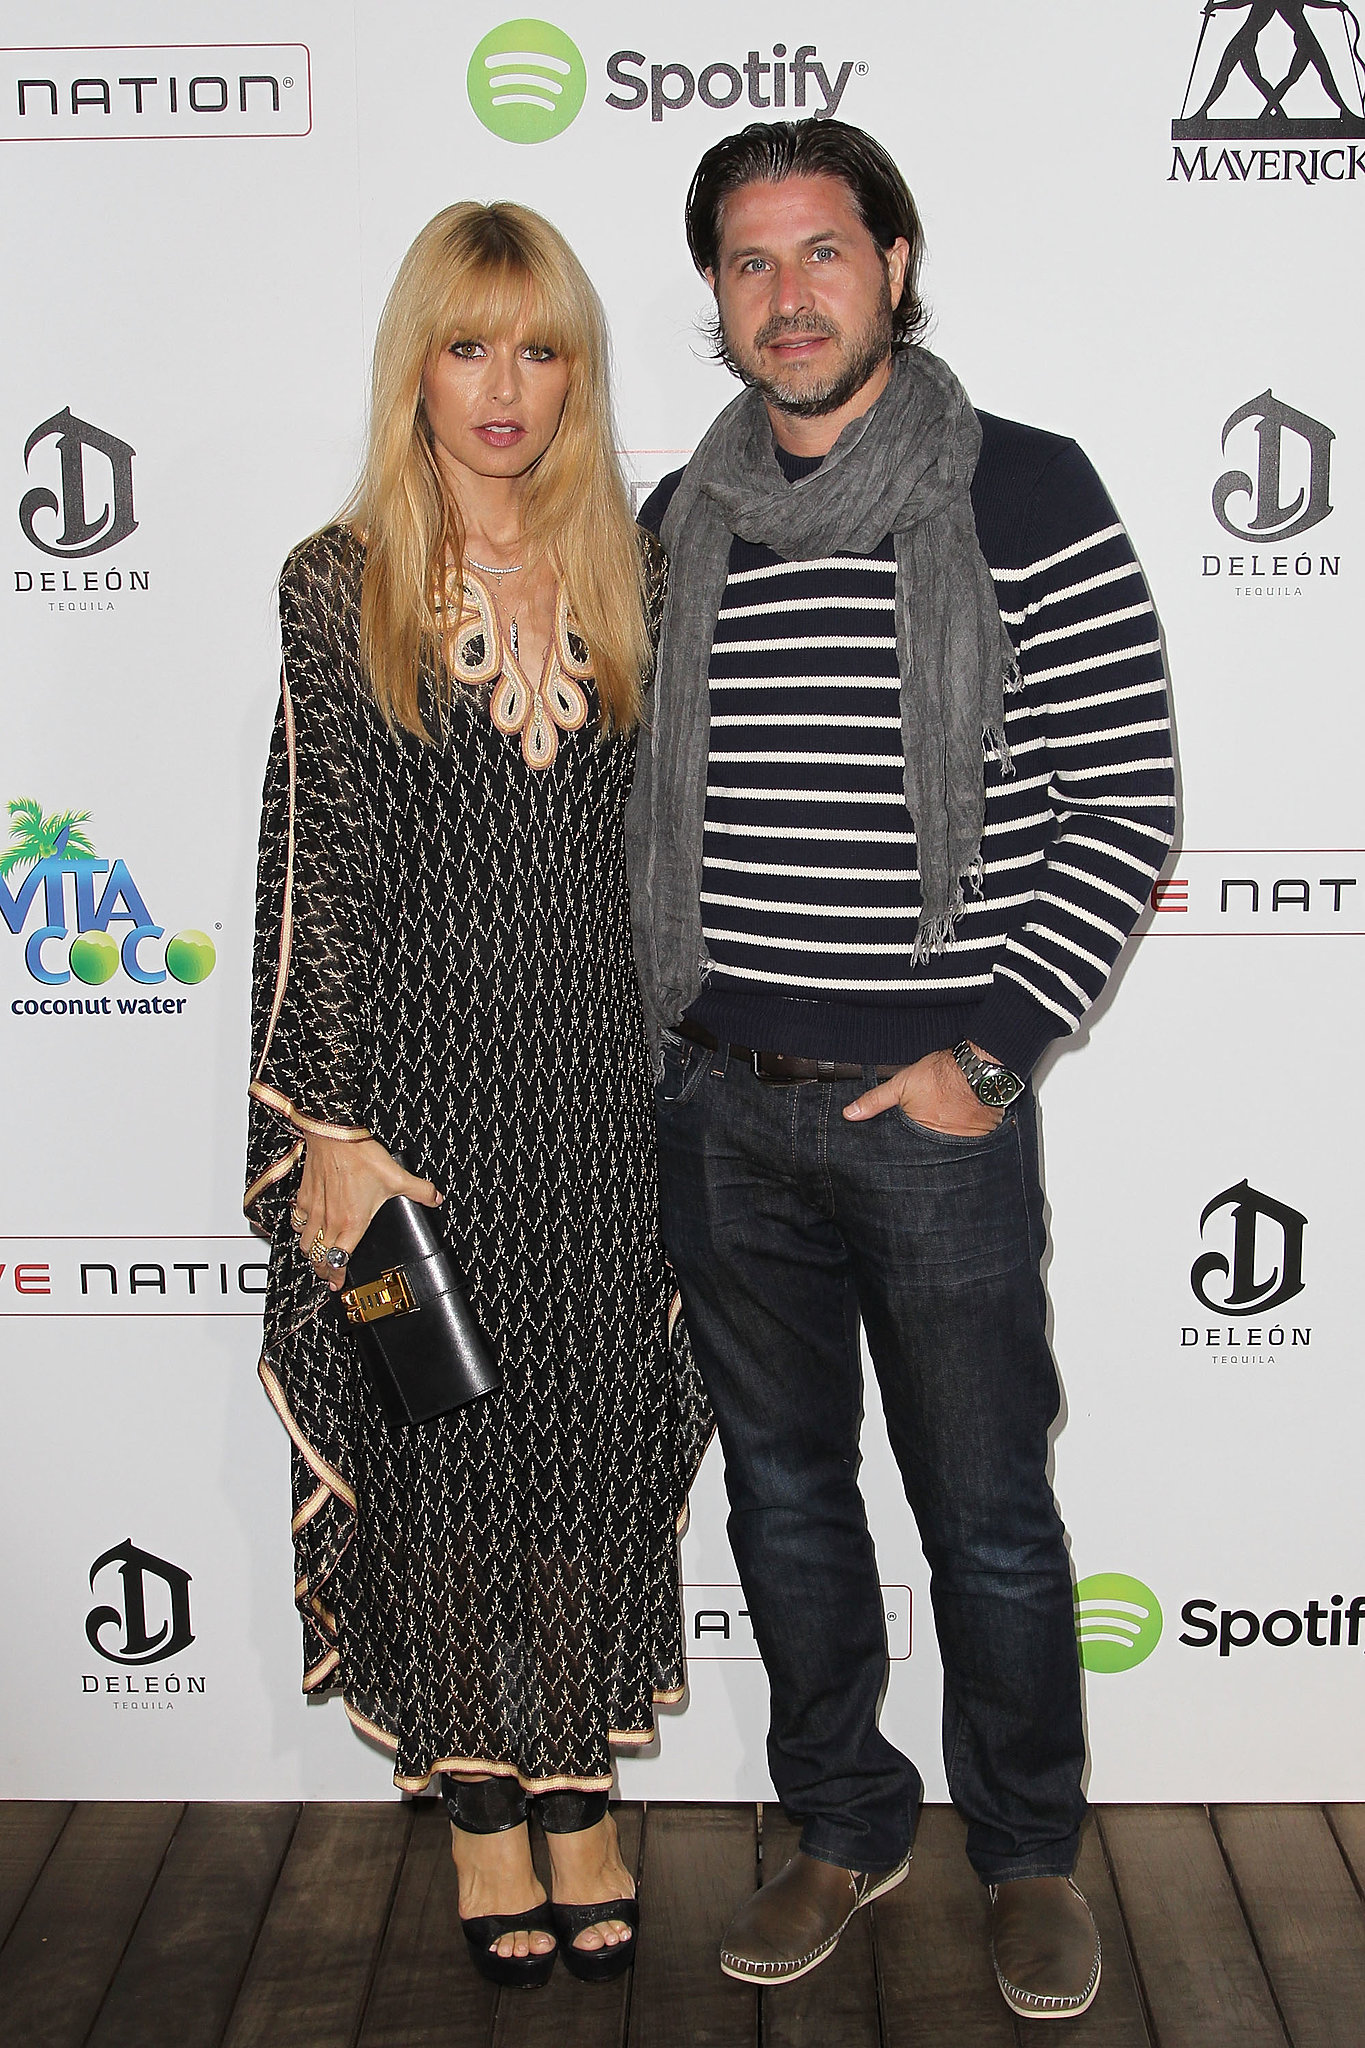 In Malibu, Rachel Zoe and Rodger Berman looked laid-back in coordinating black and white ensem